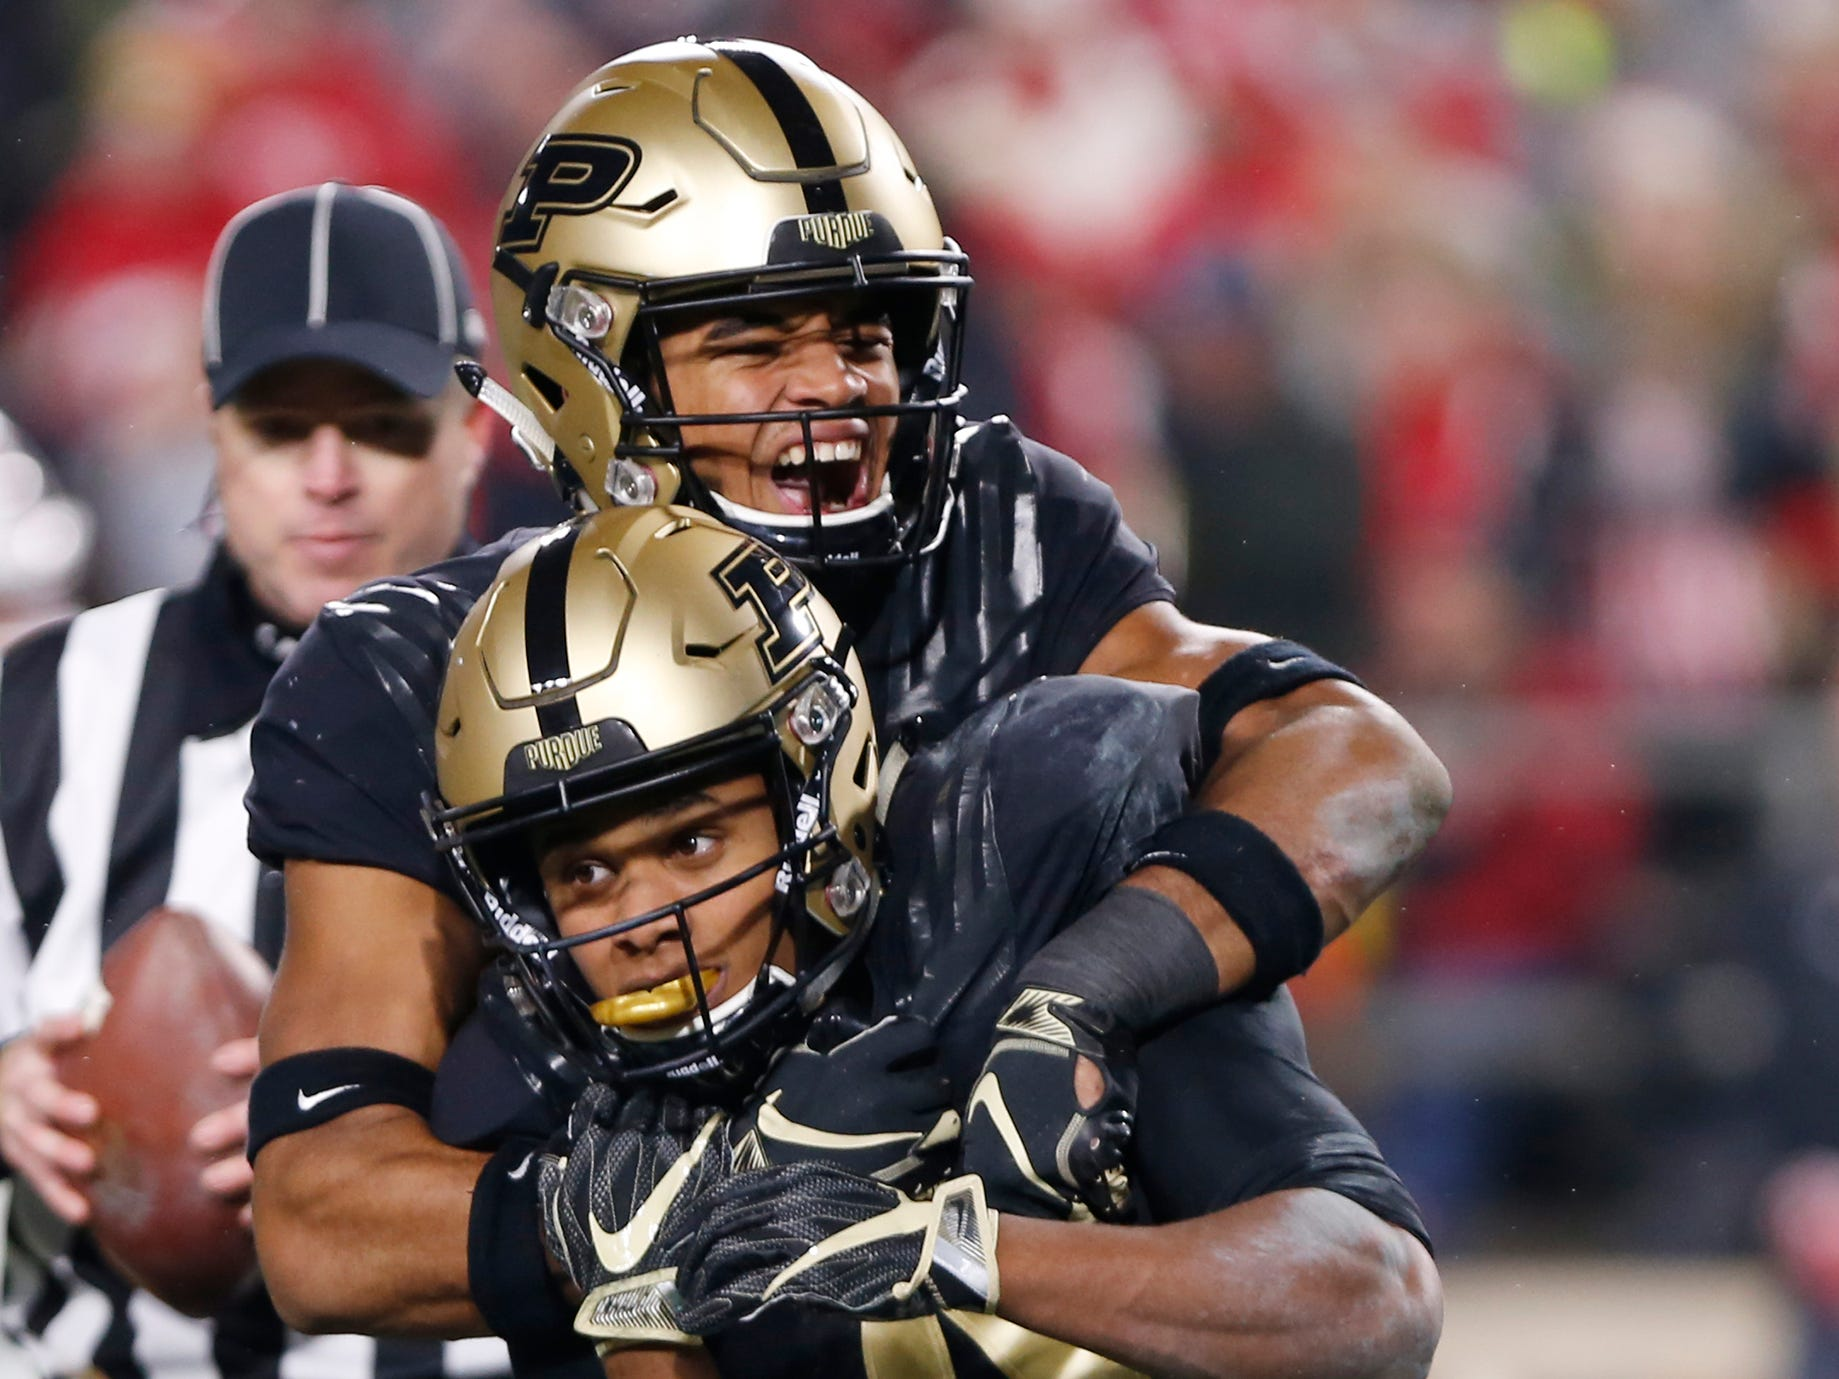 Rondale Moore, foreground, of Purdue celebrates with teammate Jared Sparks after his touchdown reception with 57 seconds remaining in the third quarter against Wisconsin Saturday, November 17, 2018, at Ross-Ade Stadium. Purdue fell to Wisconsin 47-44 3OT.